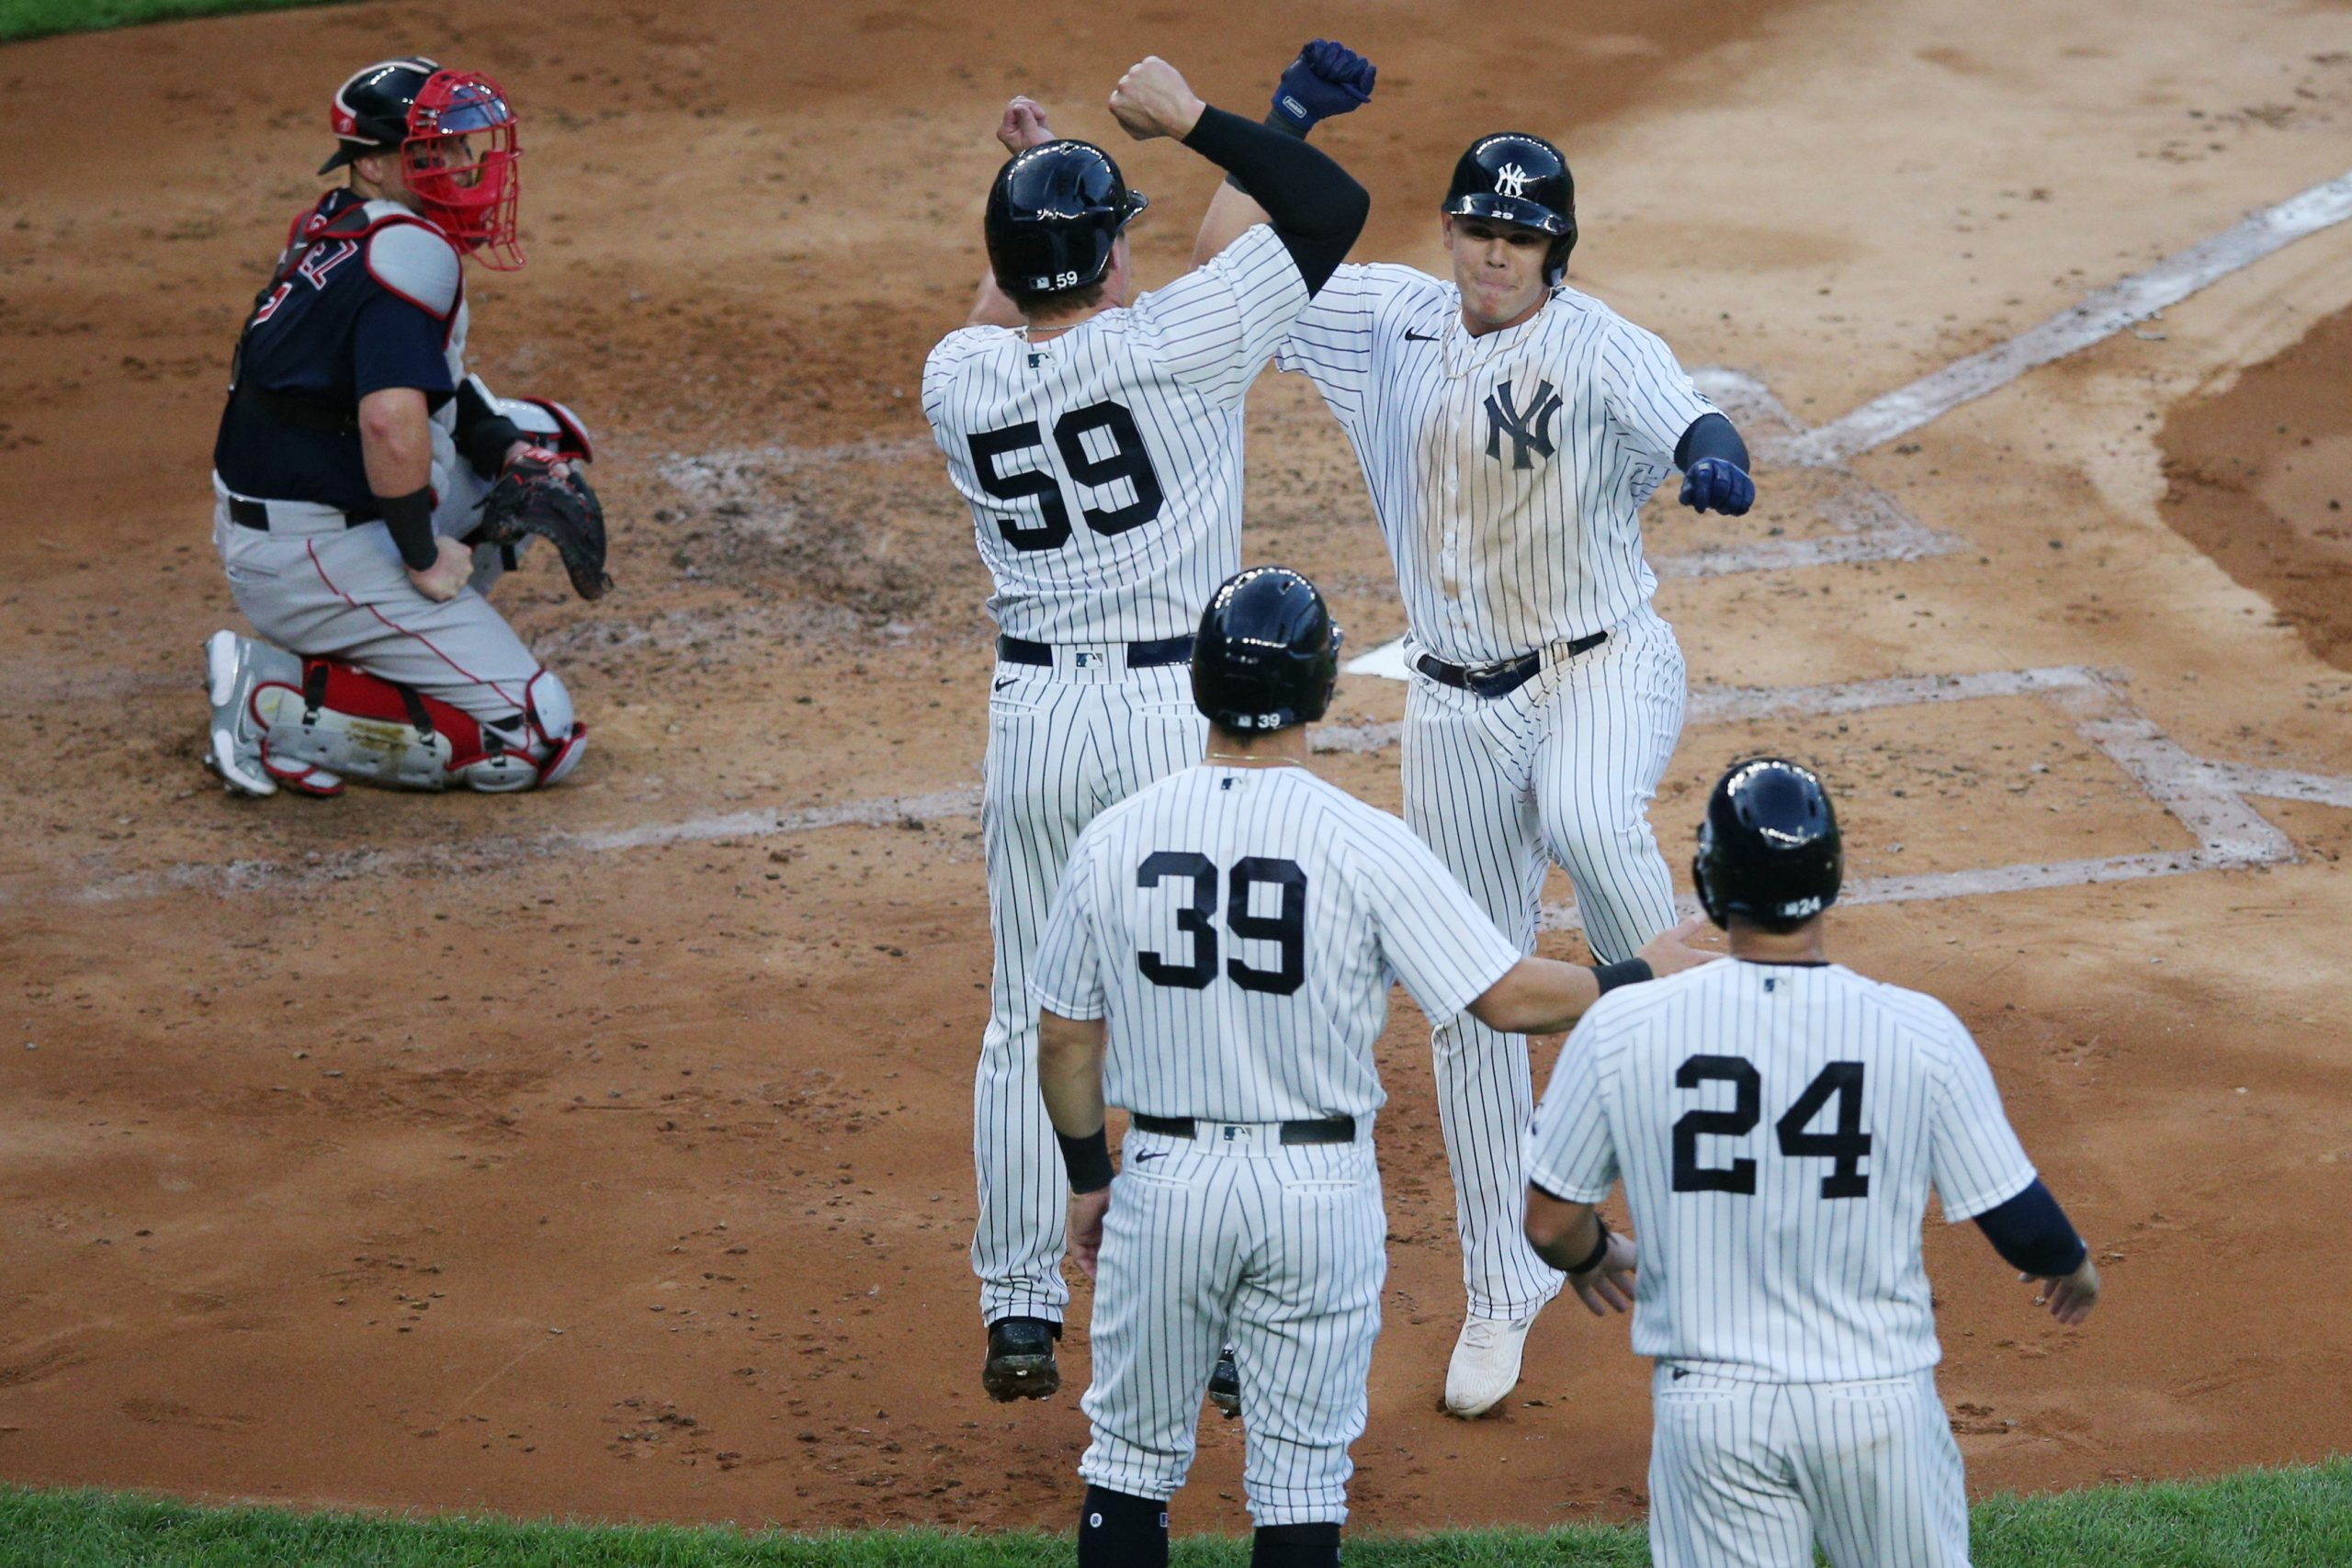 Nelson's Strong Debut, Urshela's Grand Slam Lead Yankees to 5-2 Victory Over Red Sox